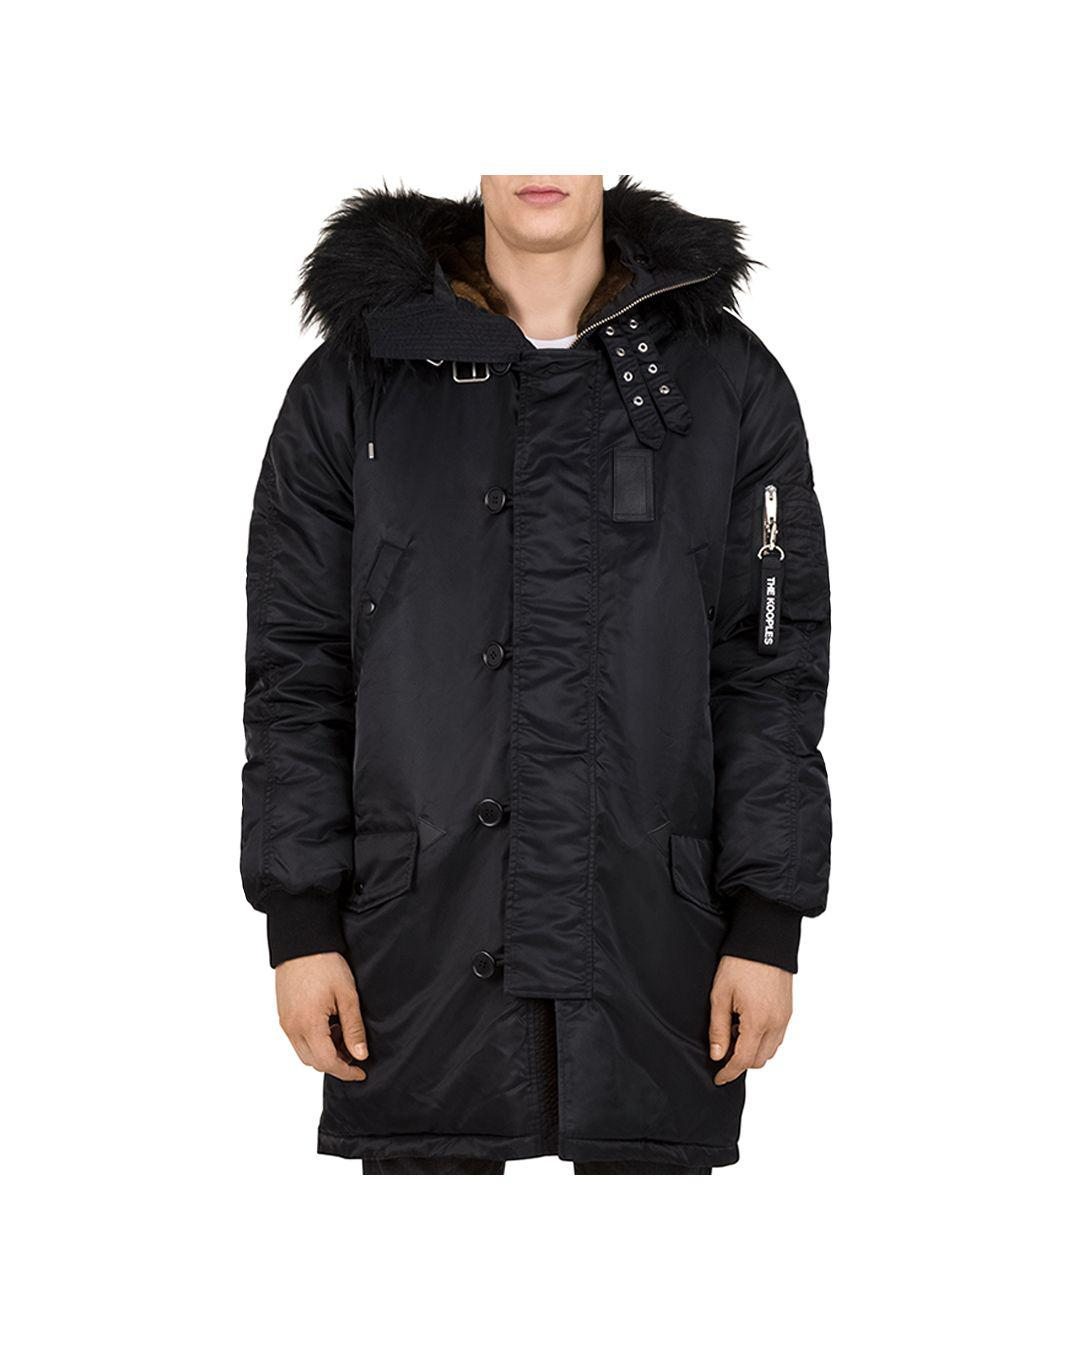 3e25fdd80065 Lyst - The Kooples Oversized Contrast-fabric Parka Jacket in Black for Men